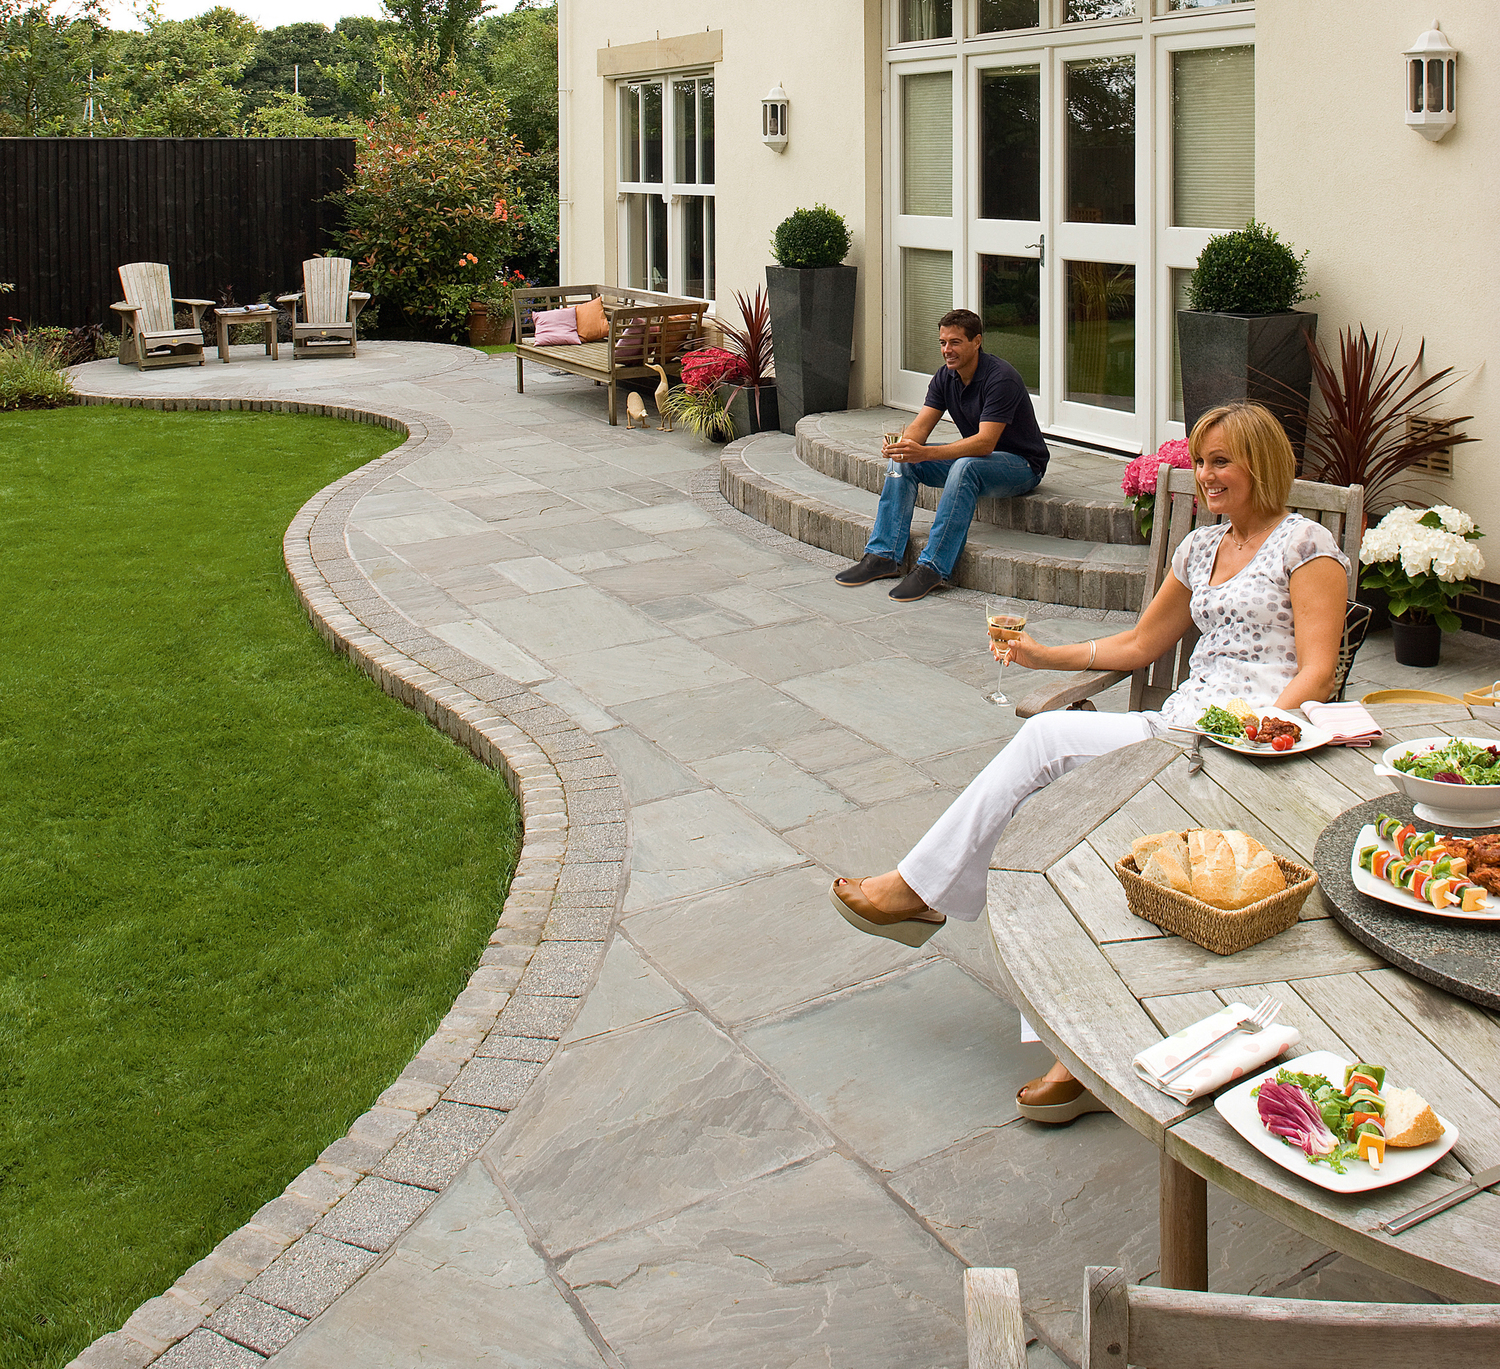 Lagrangeville Ny Patio Design Landscaping Company Hudson Valley Ny Landscaping In Dutchess County Ny Landscapers